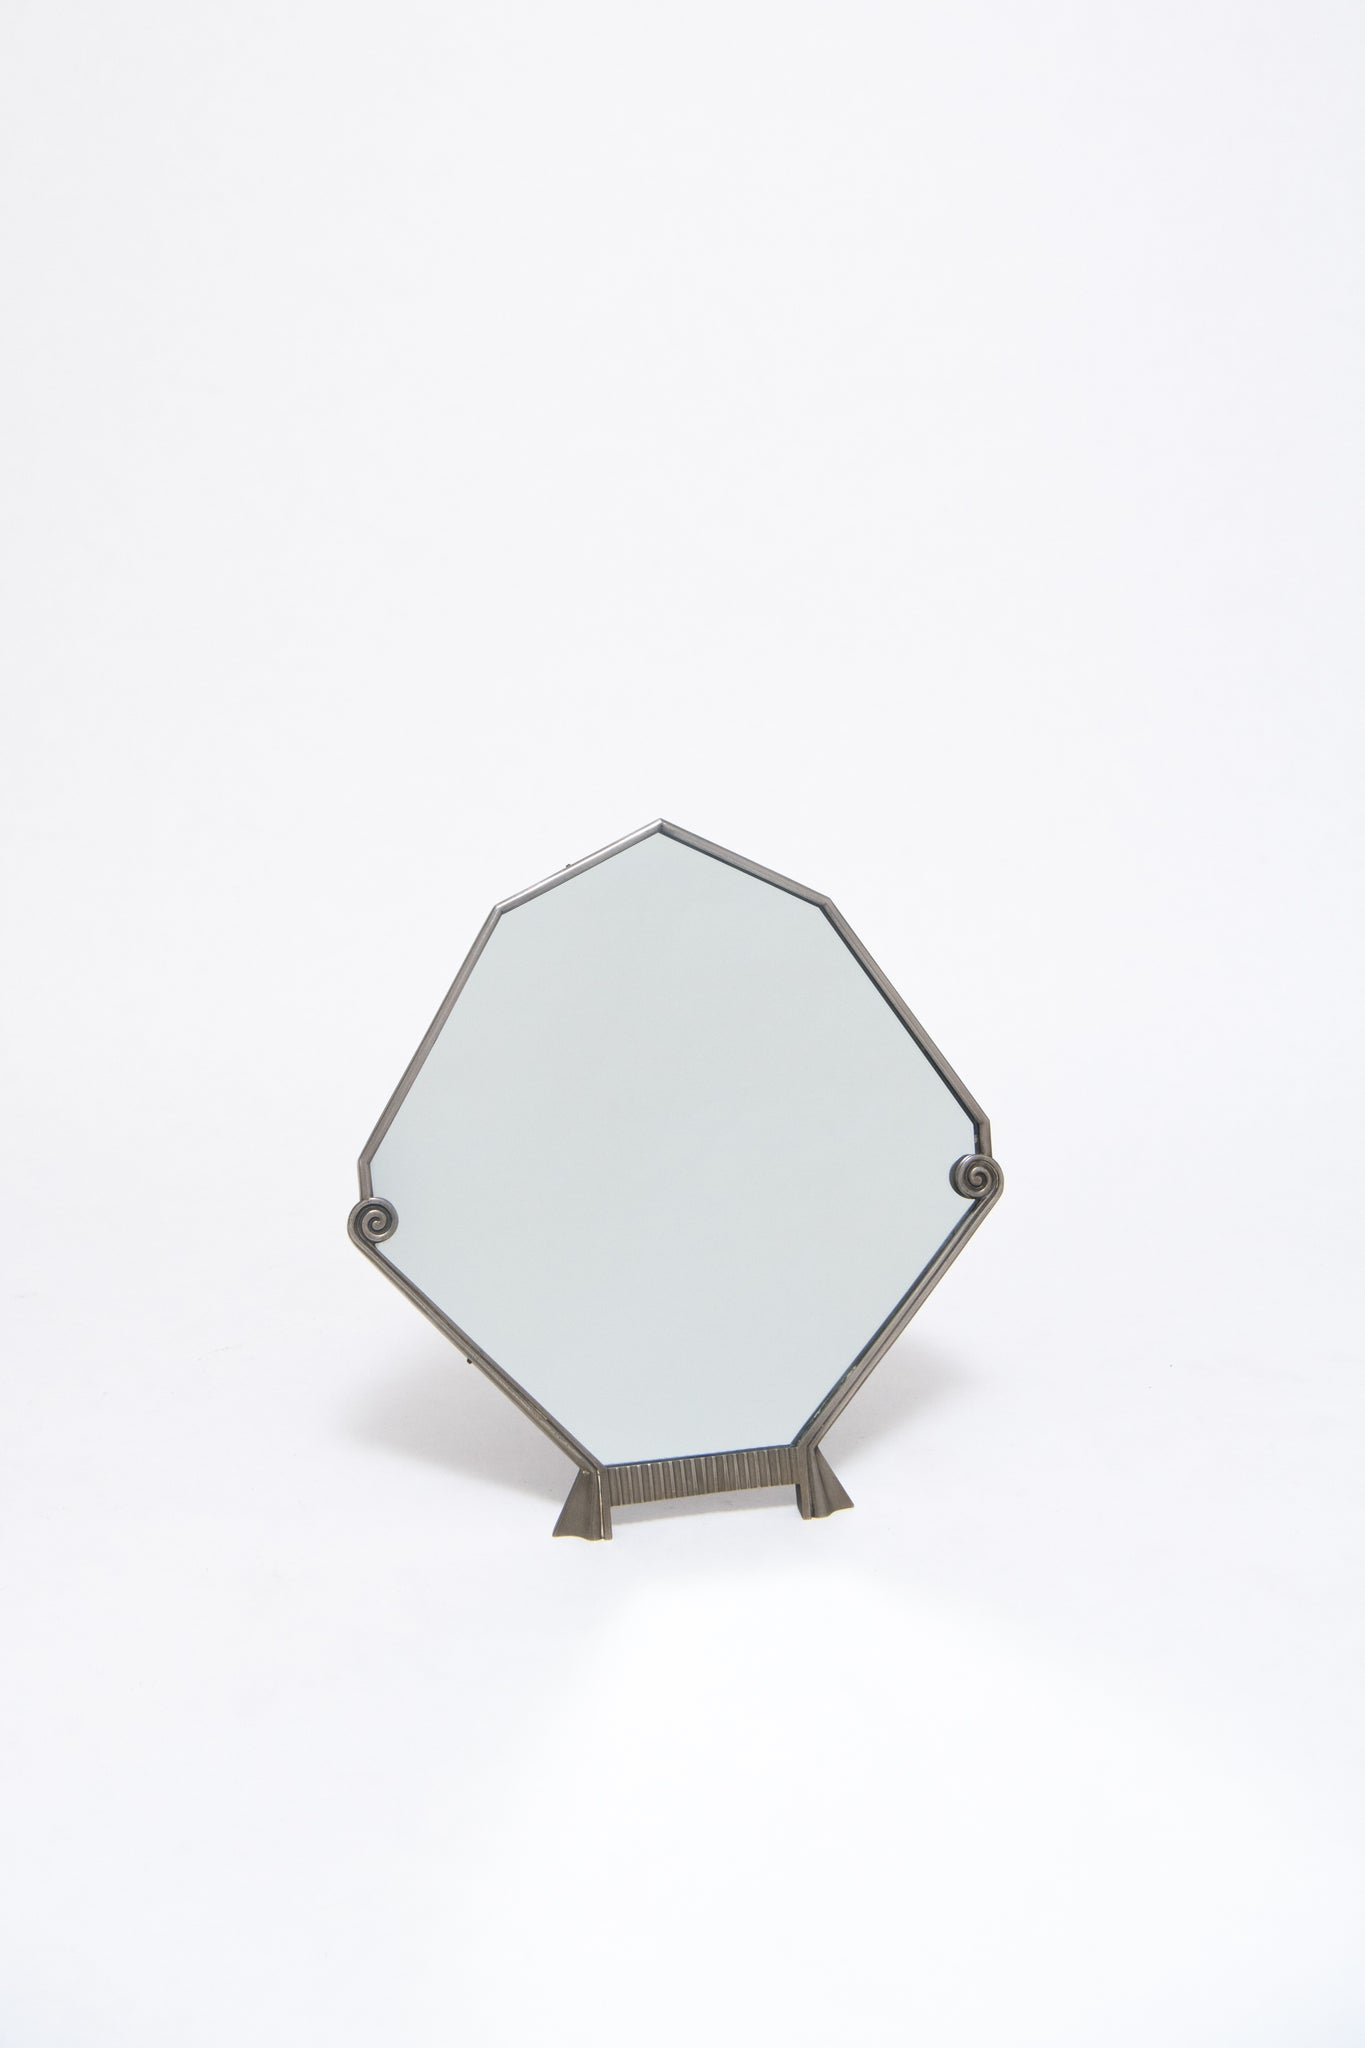 FRENCH, ART DECO TABLE TOP MIRROR, C. 1925